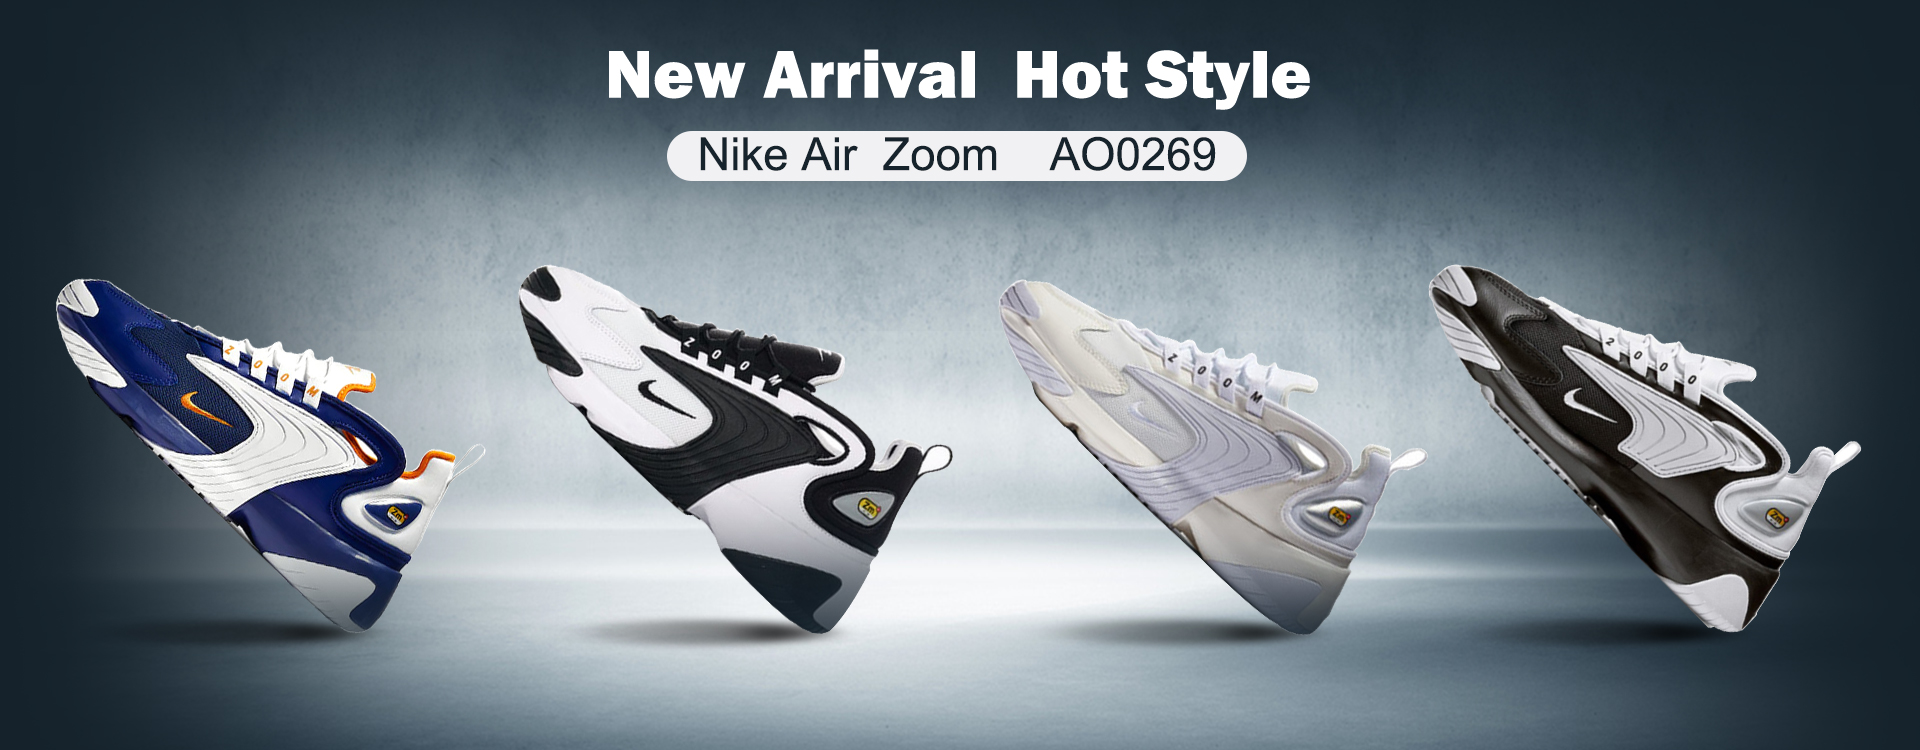 92e8f8229321 Nike Zoom 2K WMNS Men Running Shoes New Pattern Restore Ancient Ways Dad  Shoes Leisure Time Motion Comfortable Sneakers AO0269